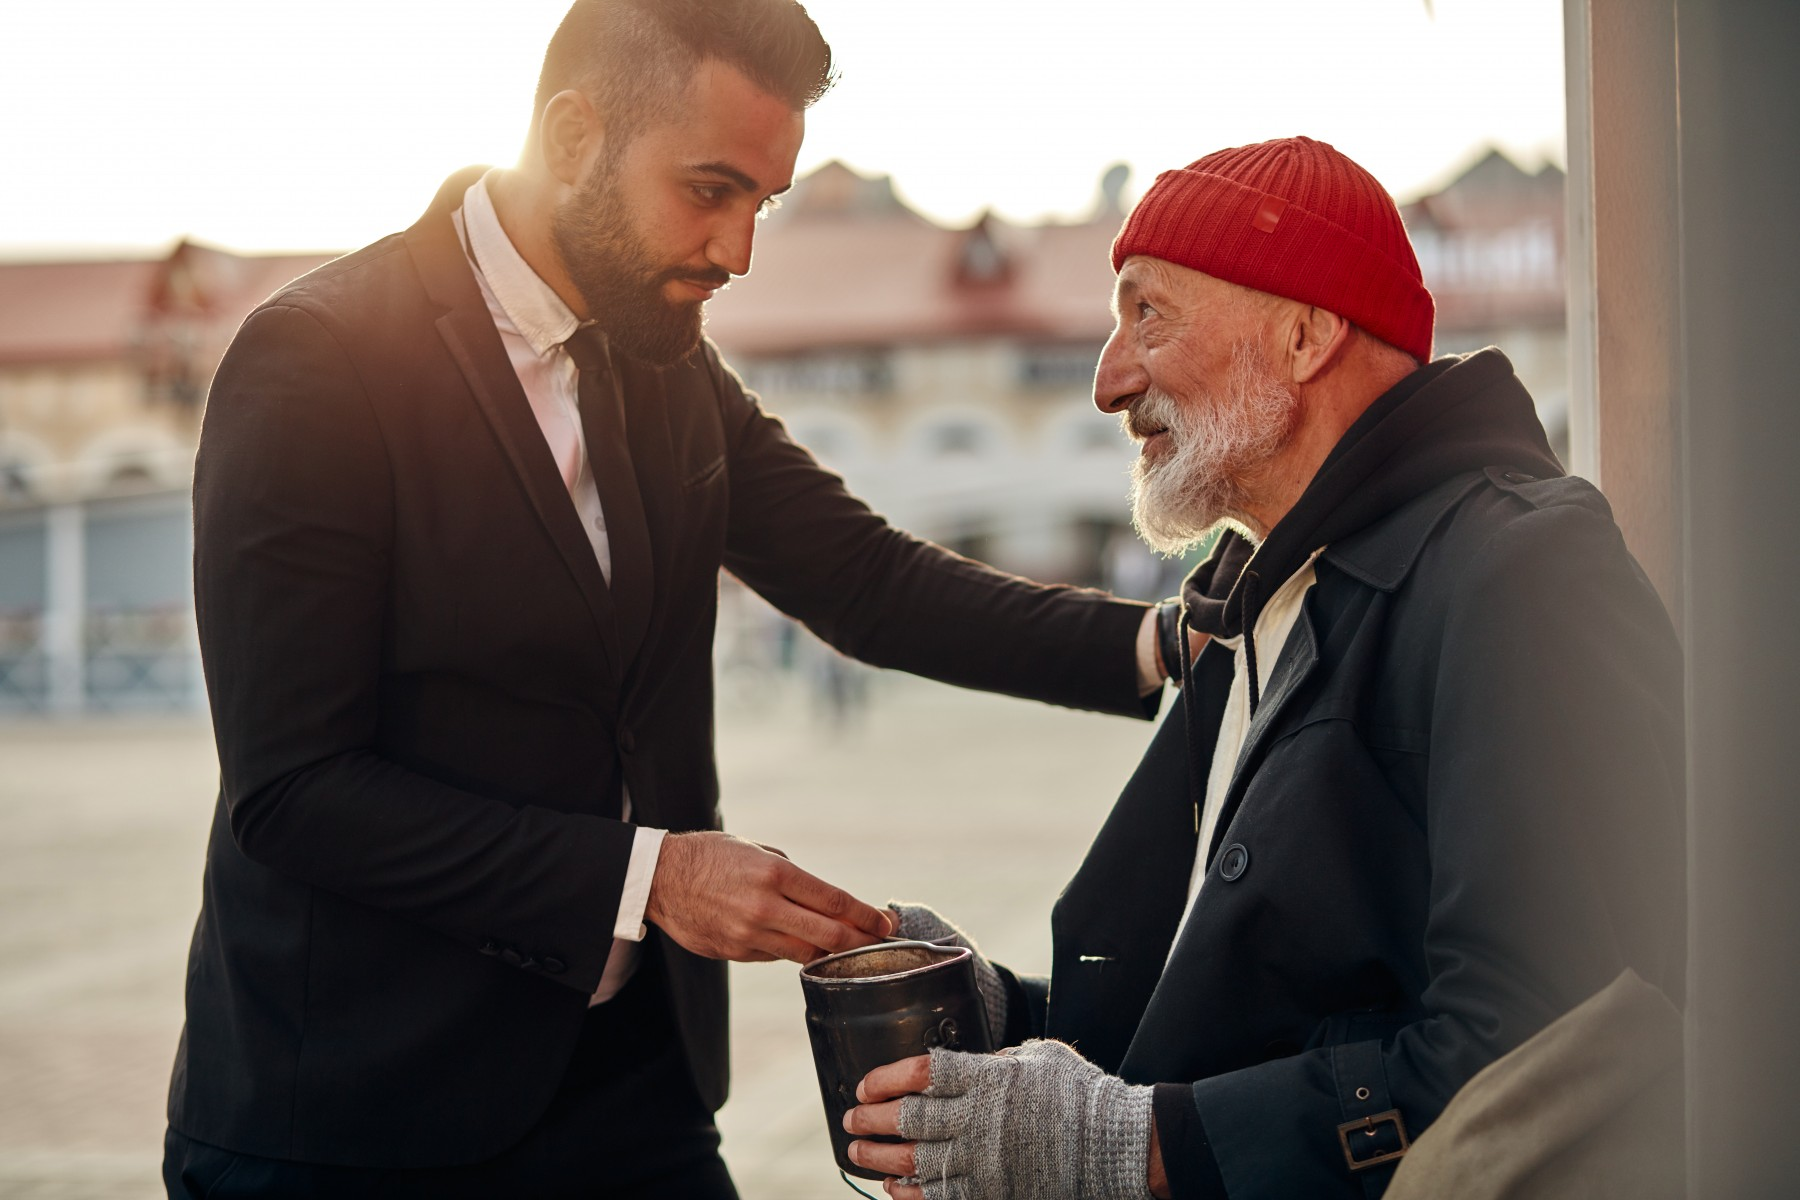 A new study has found that people by and large choose to be generous to others – even to strangers, and even when it costs them something.